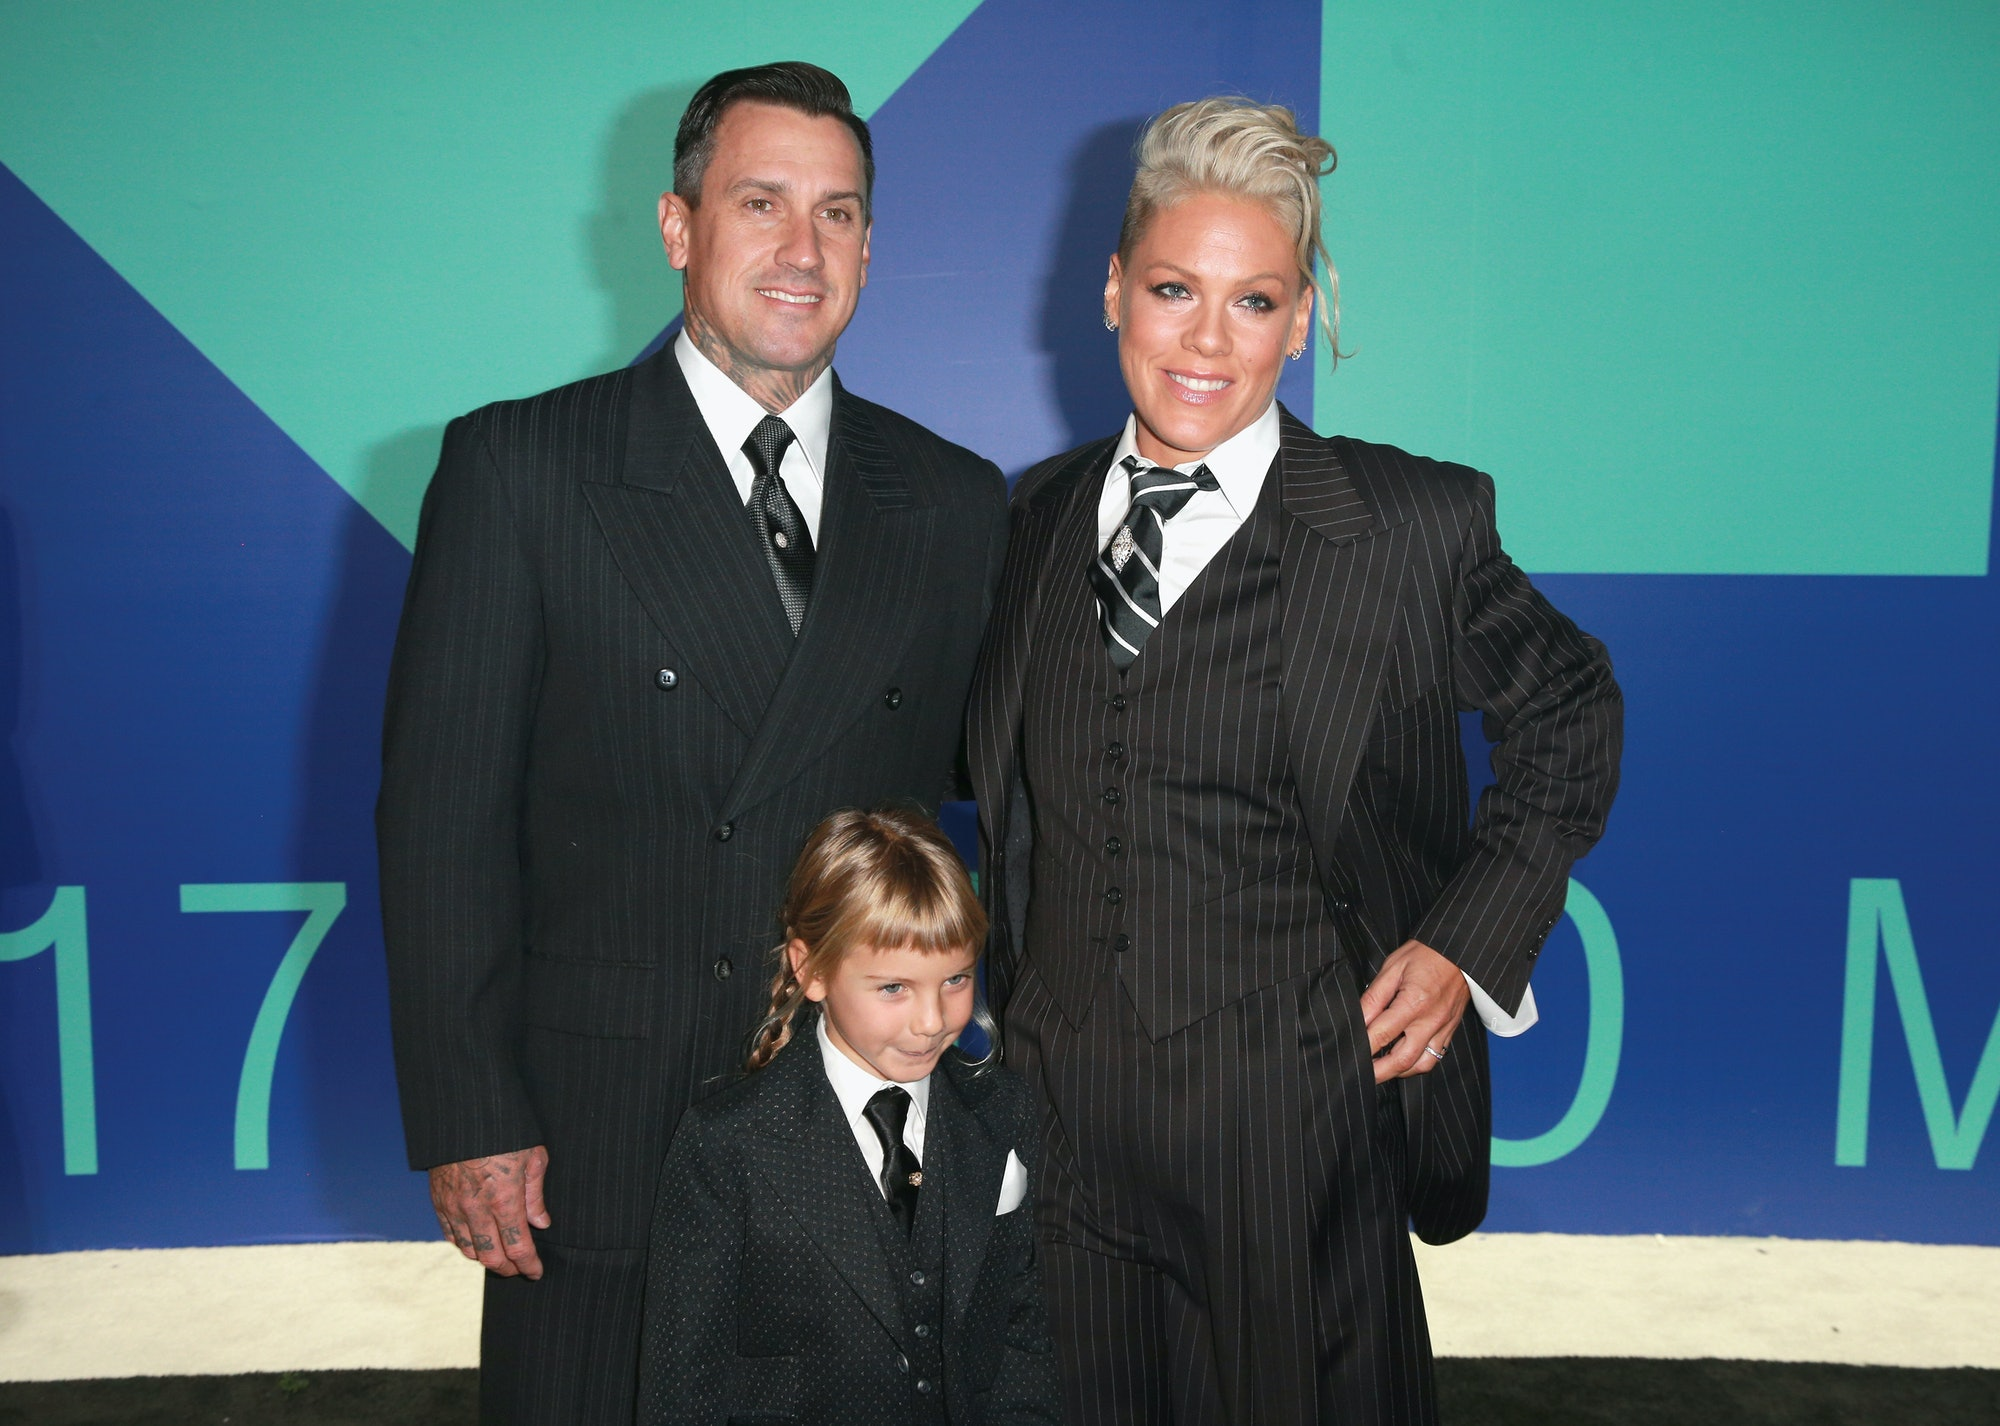 INGLEWOOD, CA - AUGUST 27: (L-R) Carey Hart, Willow Sage Hart, and Pink attend the 2017 MTV Video Music Awards at The Forum on August 27, 2017 in Inglewood, California. (Photo by Rich Fury/Getty Images)